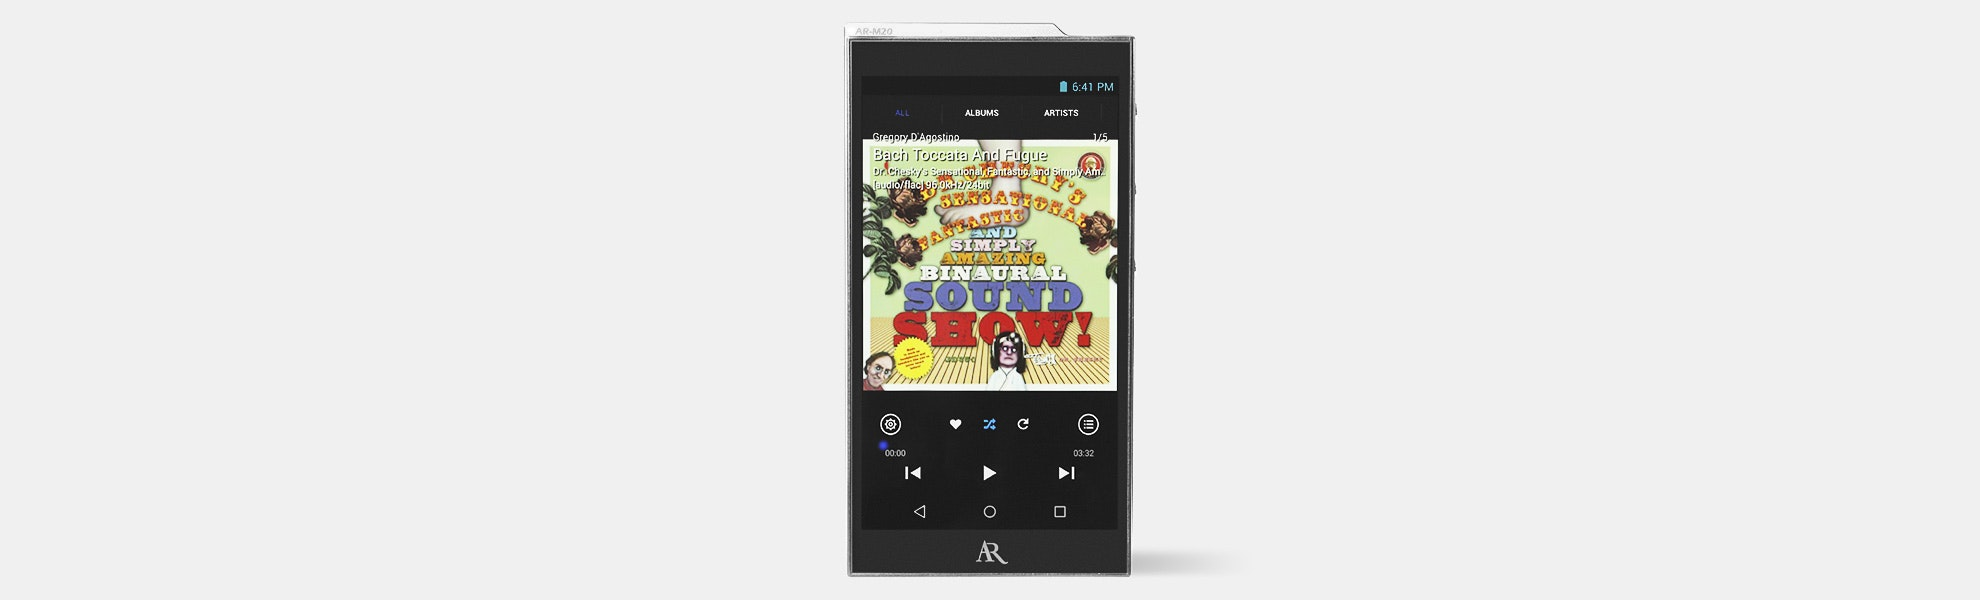 Acoustic Research AR-M20 & M2 Digital Audio Players